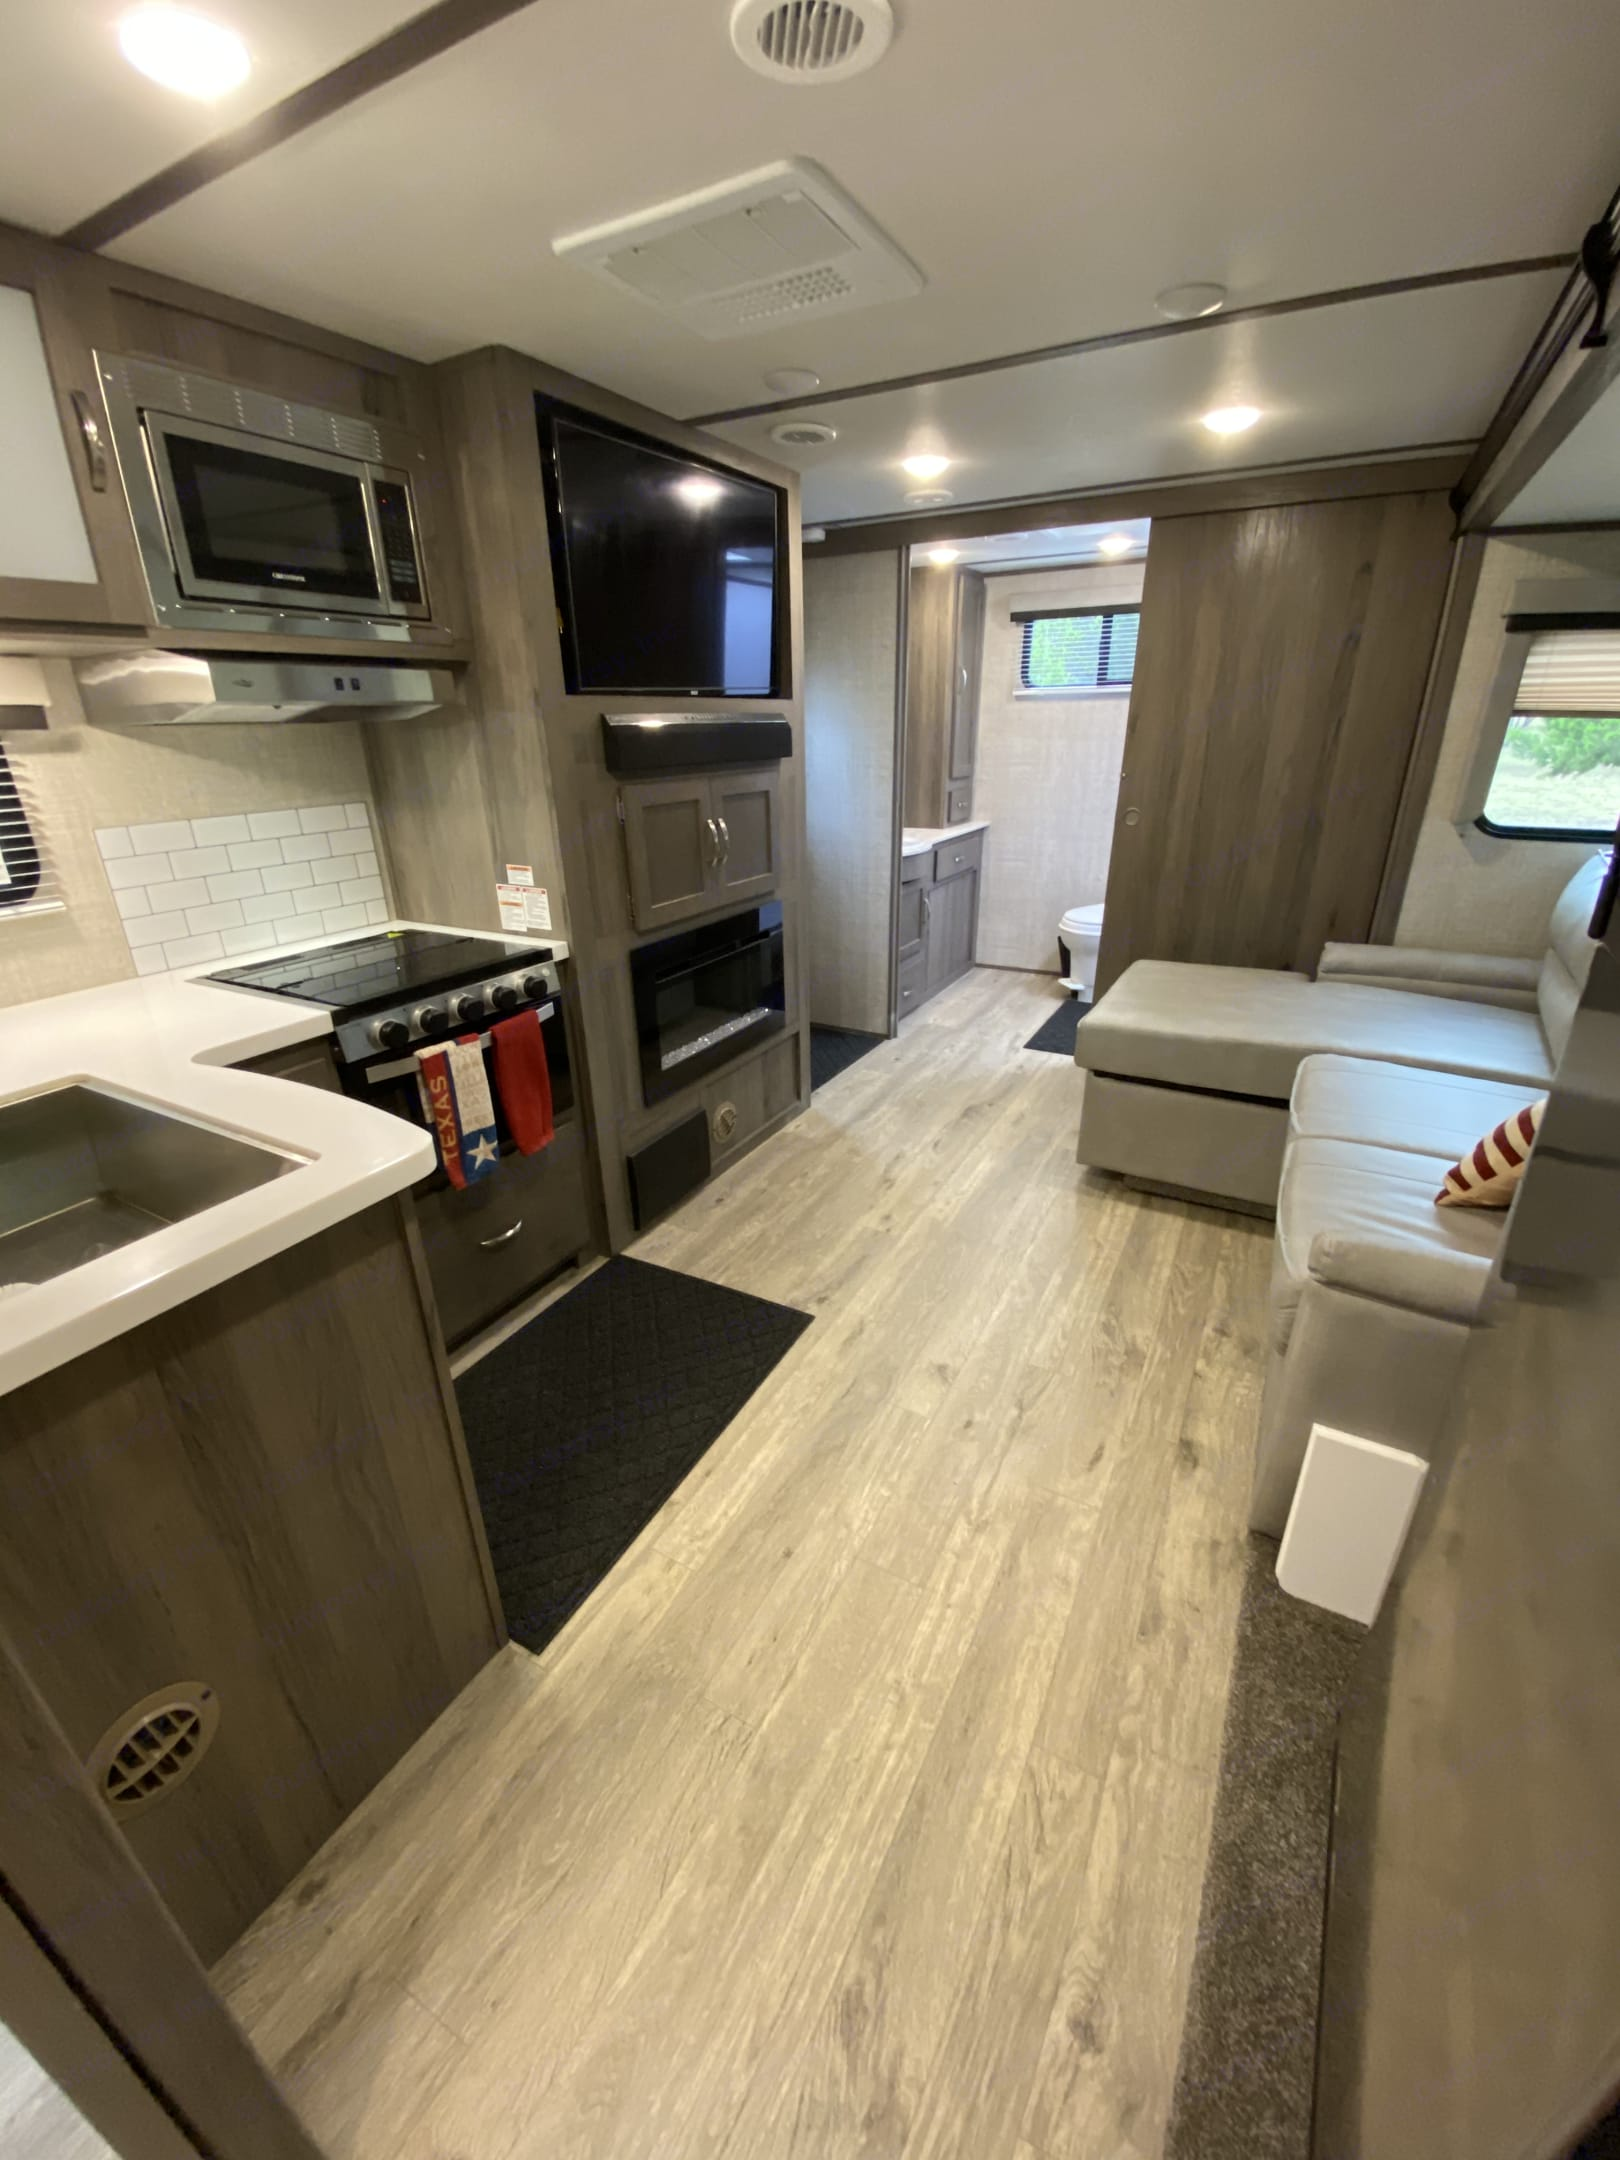 Kitchen and entertainment area. Gulf Stream Envision 2021